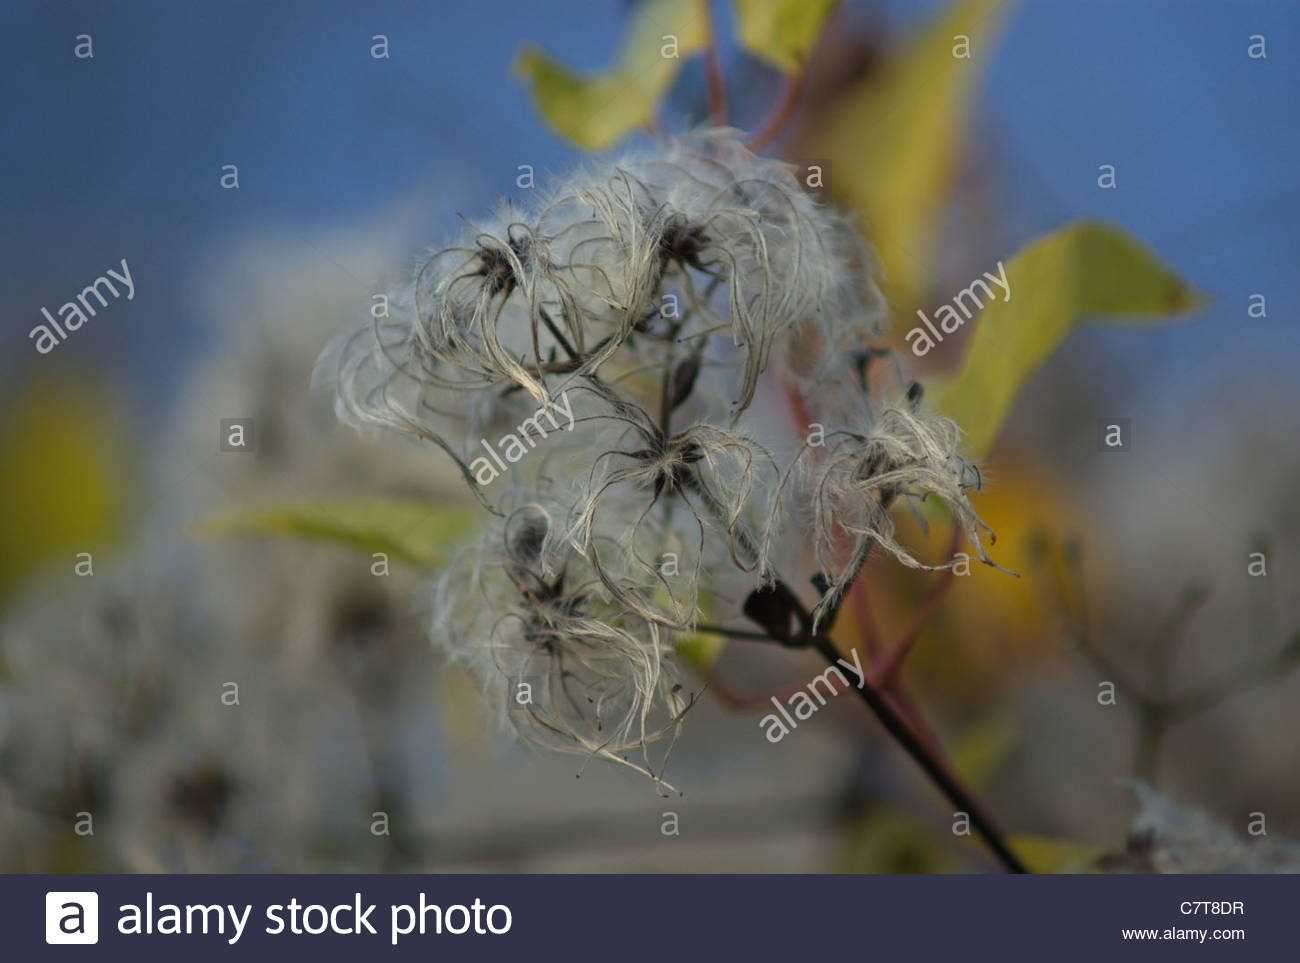 Old Man's Beard, Traveller's Joy,  Clematis Vitalba  seed head aka Beggar's Herb, Rascal's Herb and herbe aux gueux Stock Photo